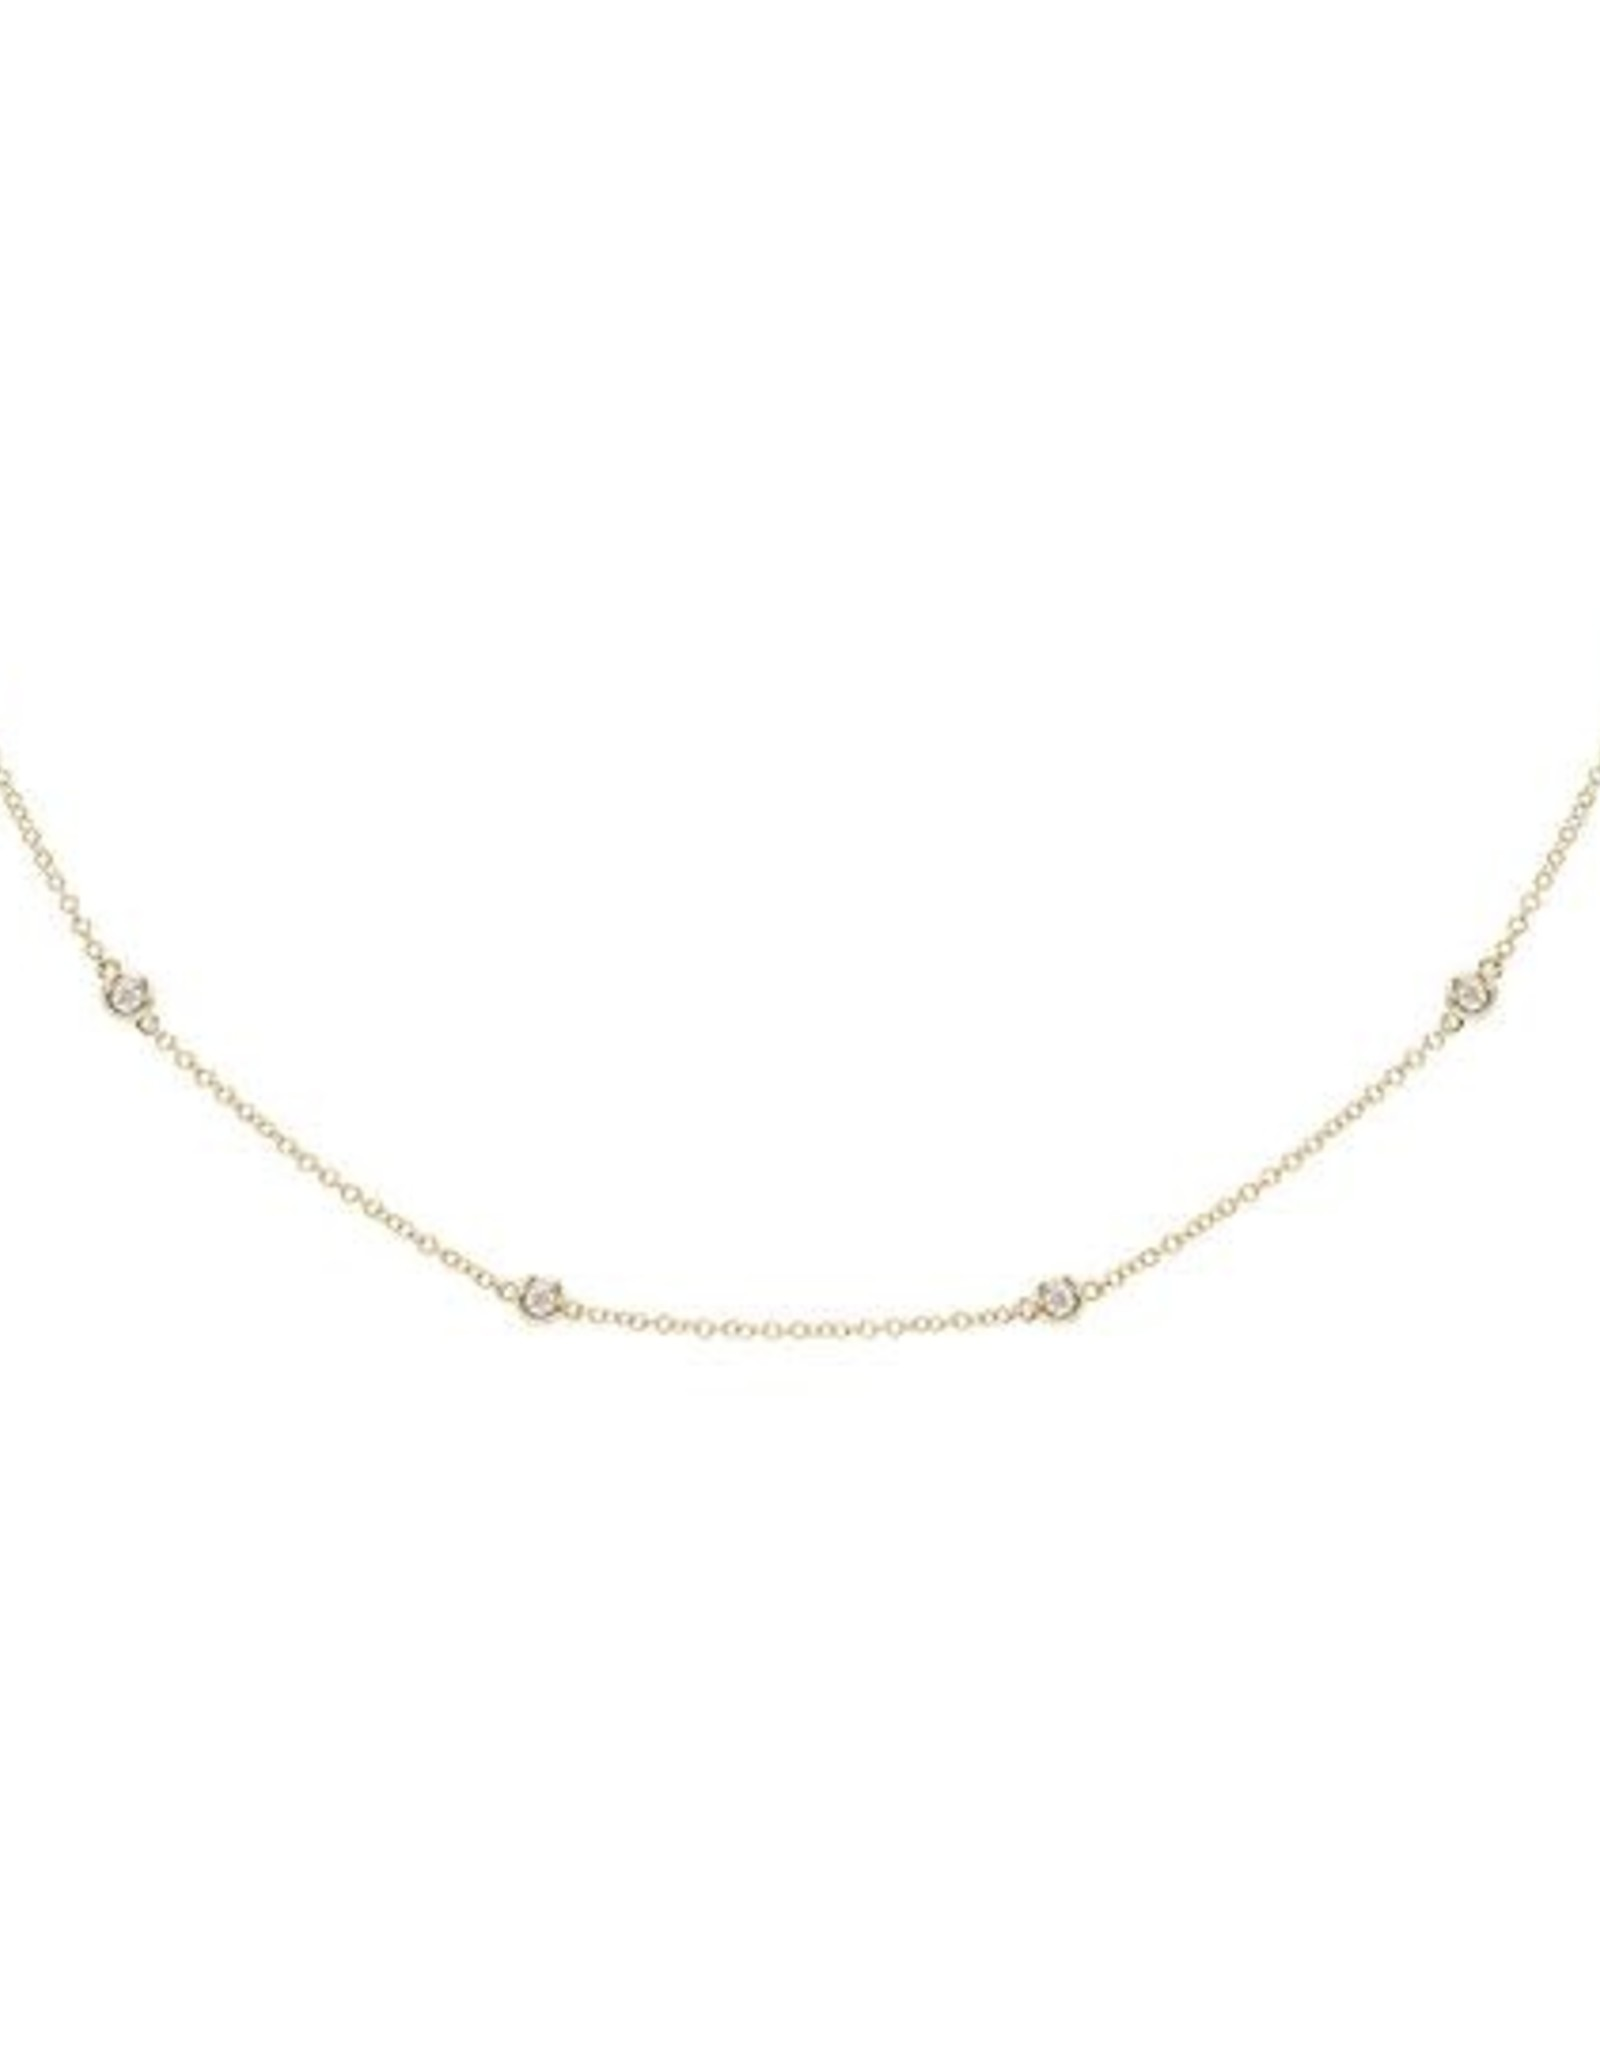 Adinas Diamond Bezel Chain Necklace 14k